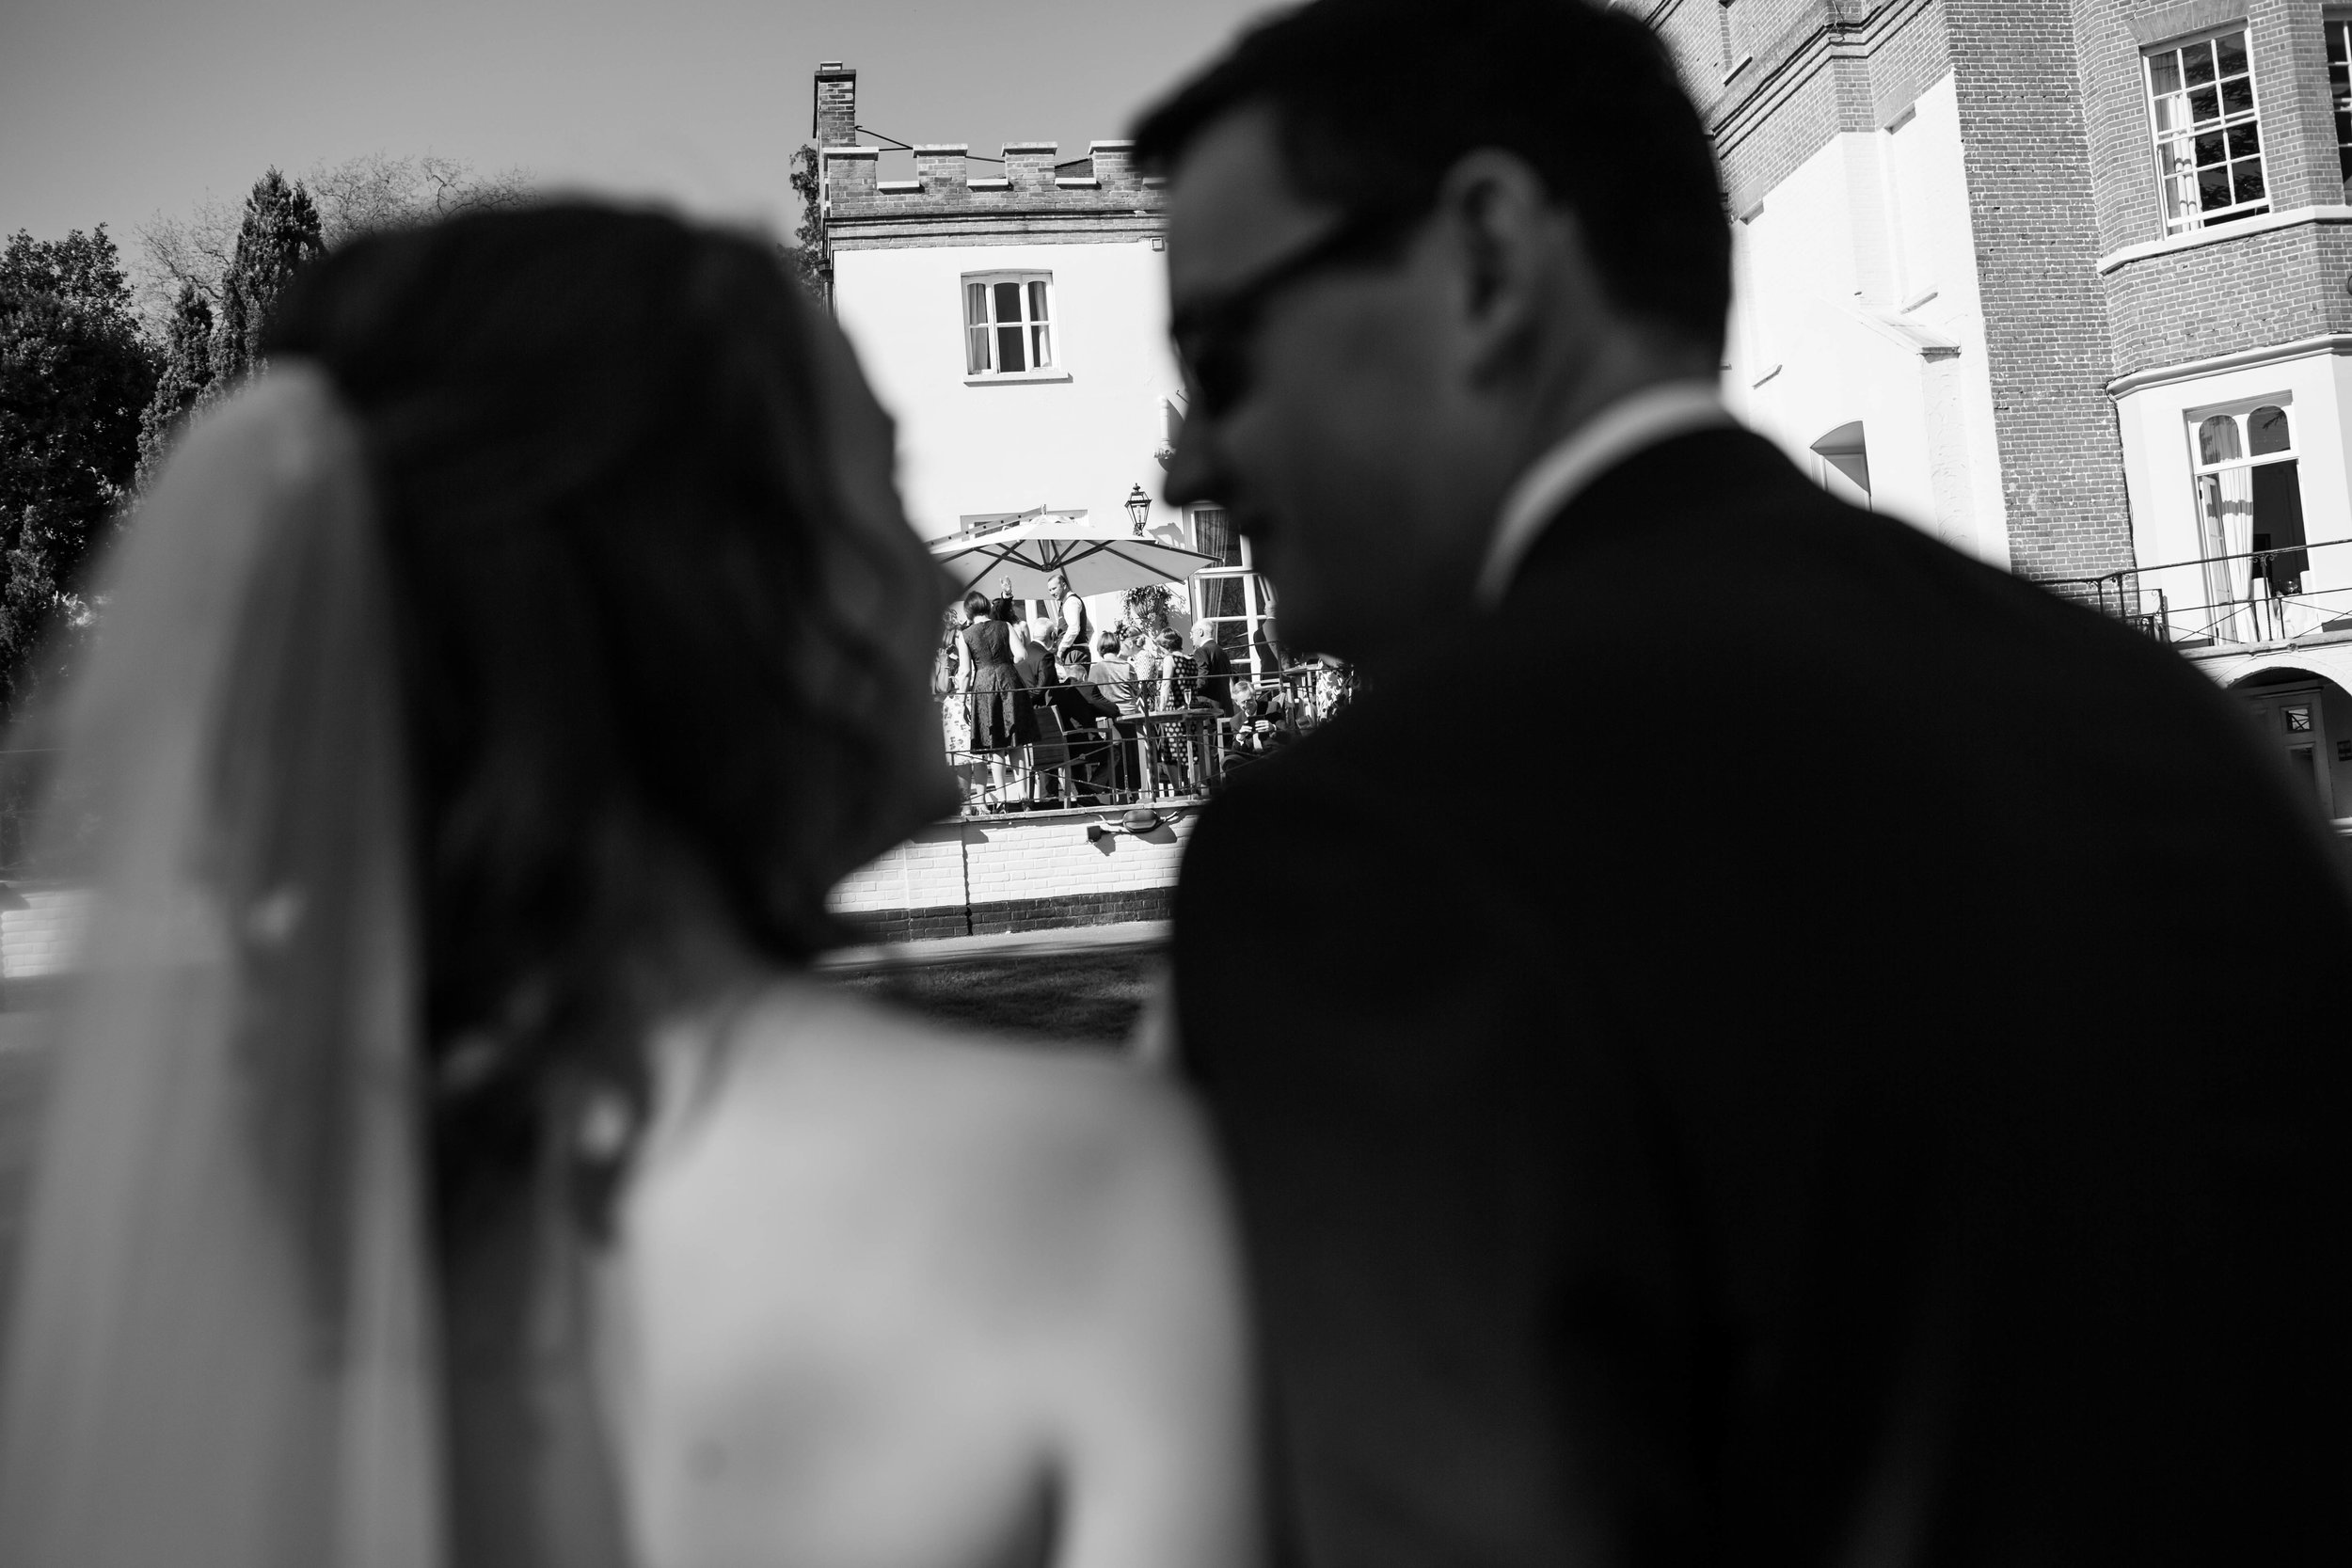 NLPhotography_Taplow_House-Wedding_Photographer_Emily&Alan_BnW-348.jpg